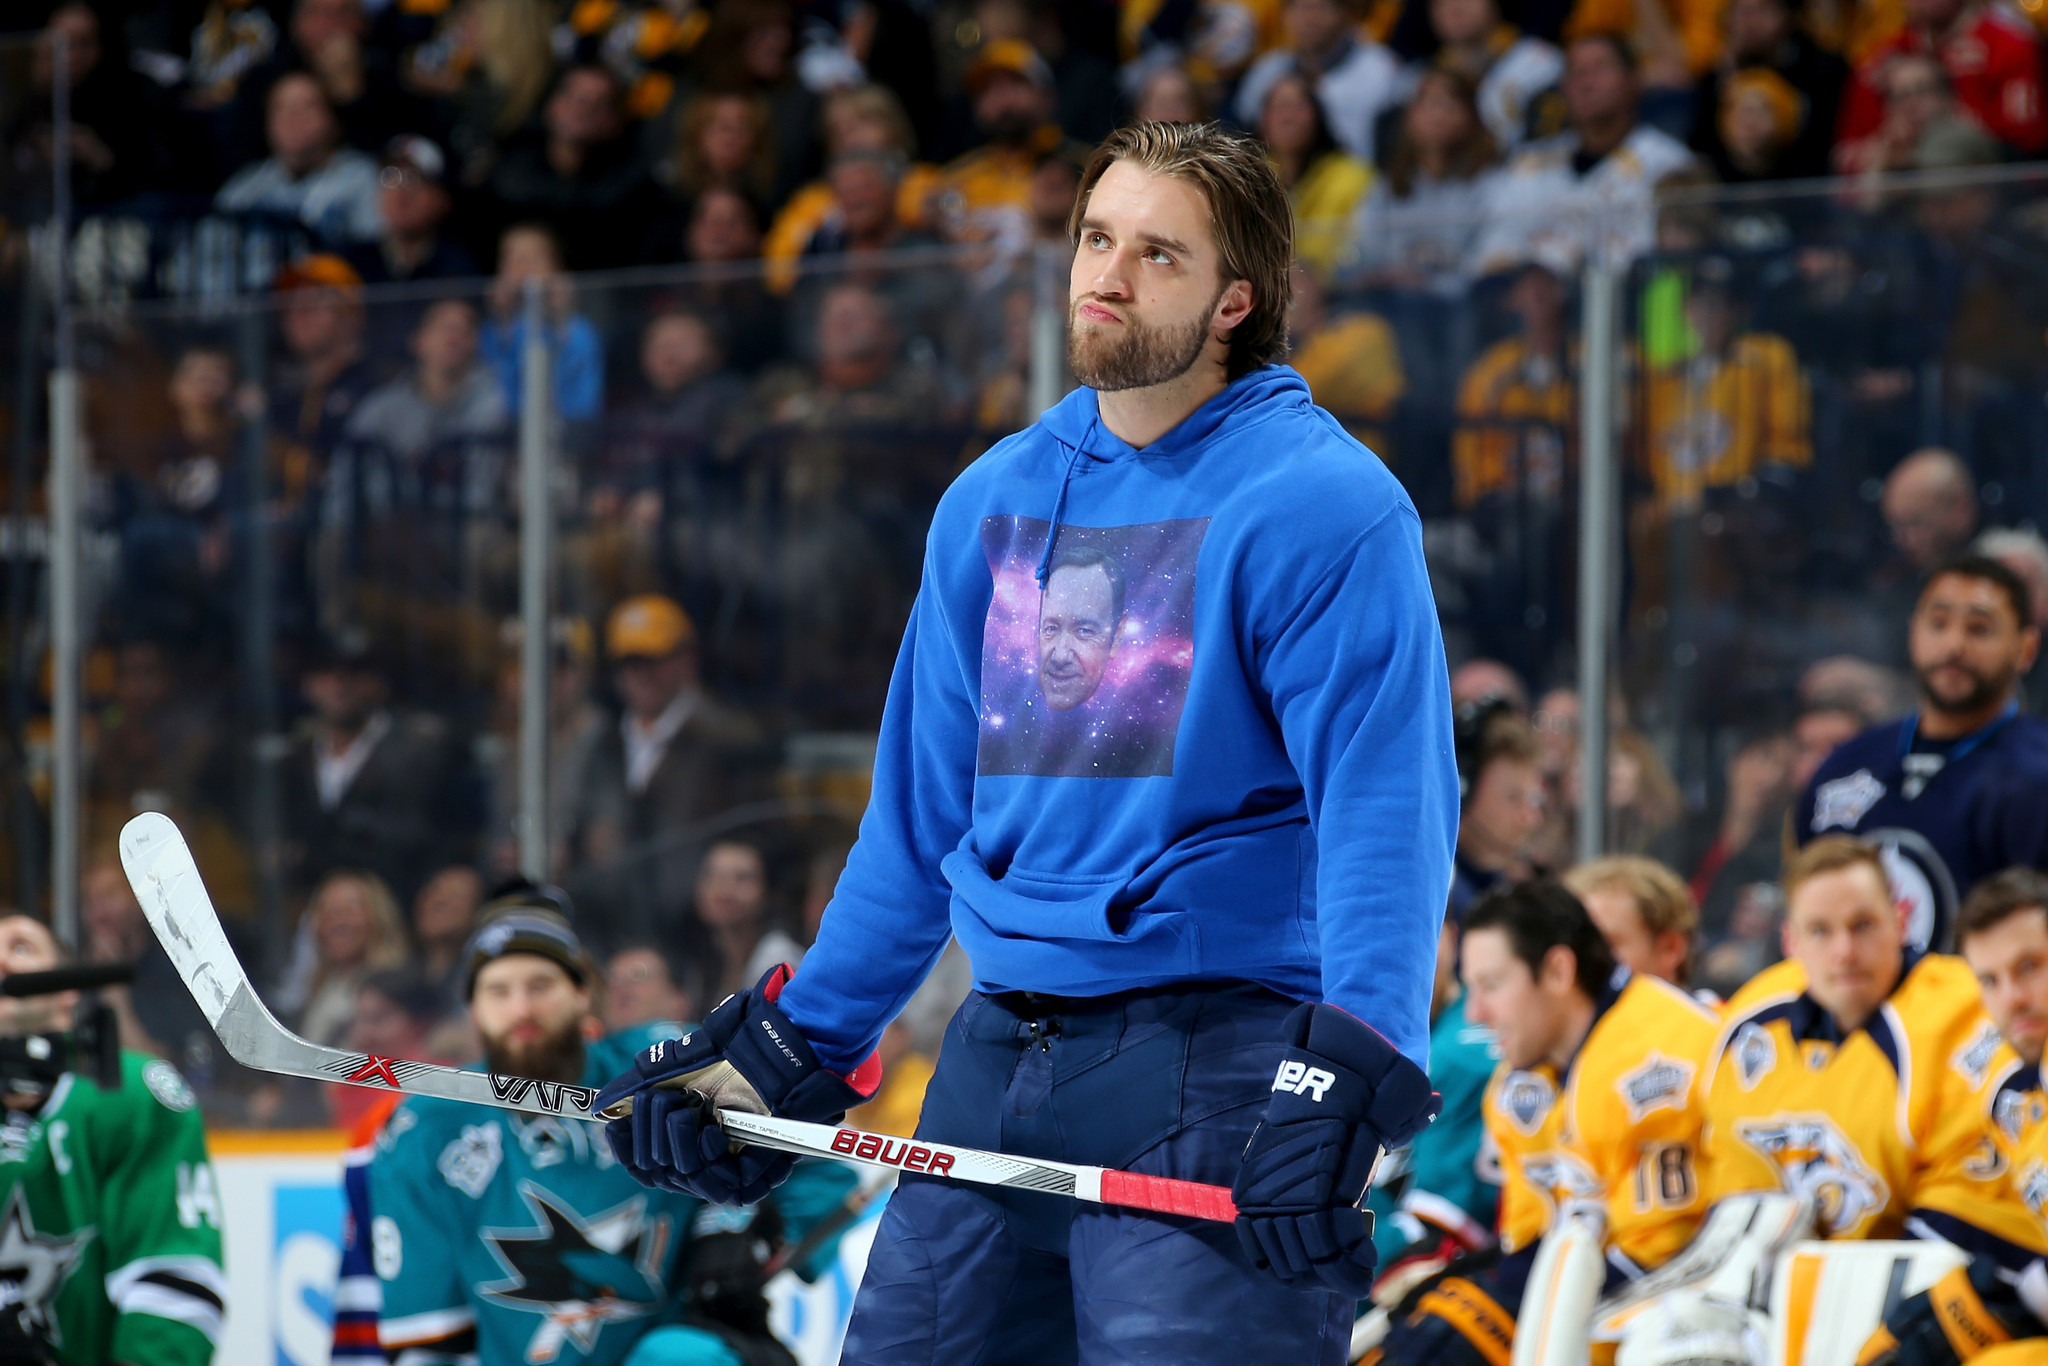 Sfl-panthers-are-retiring-spacey-in-space-sweatshirt-20160426